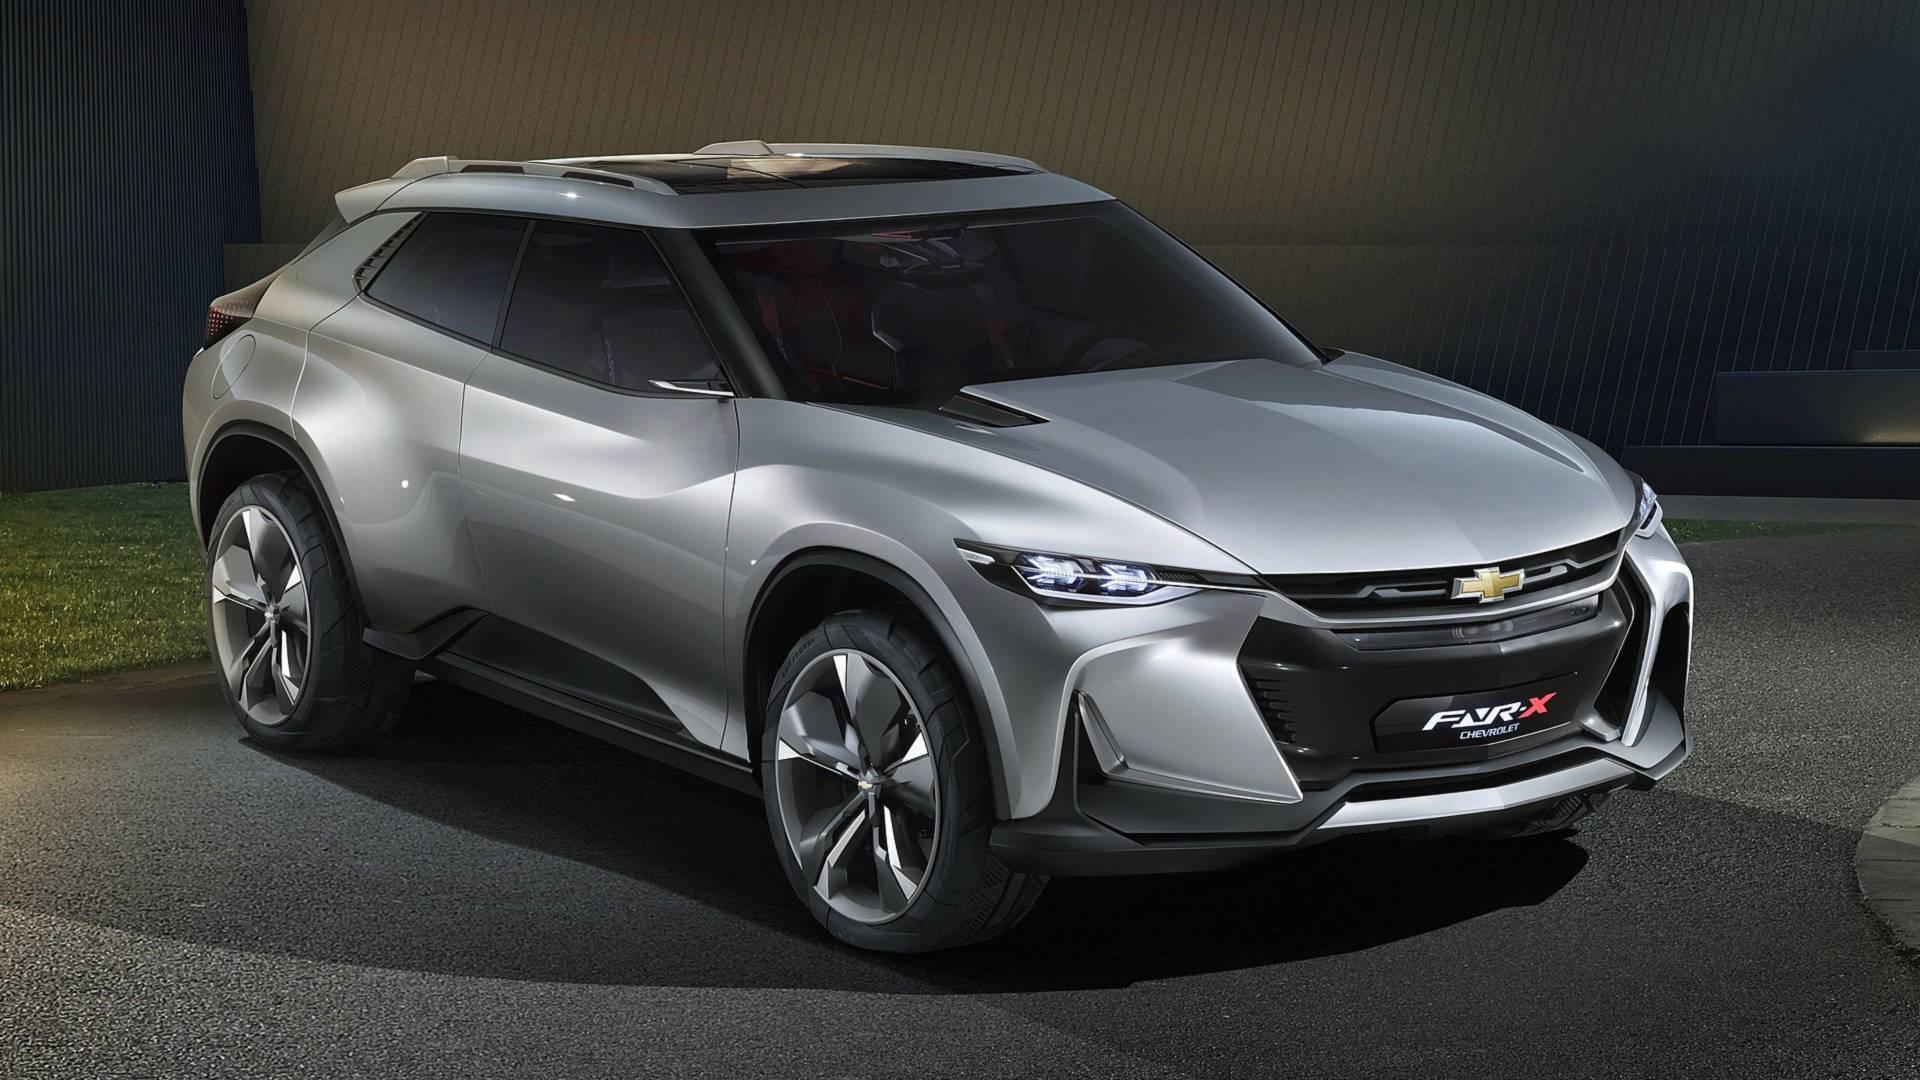 66 New Future Cars 2020 Chevrolet Images for Future Cars 2020 Chevrolet